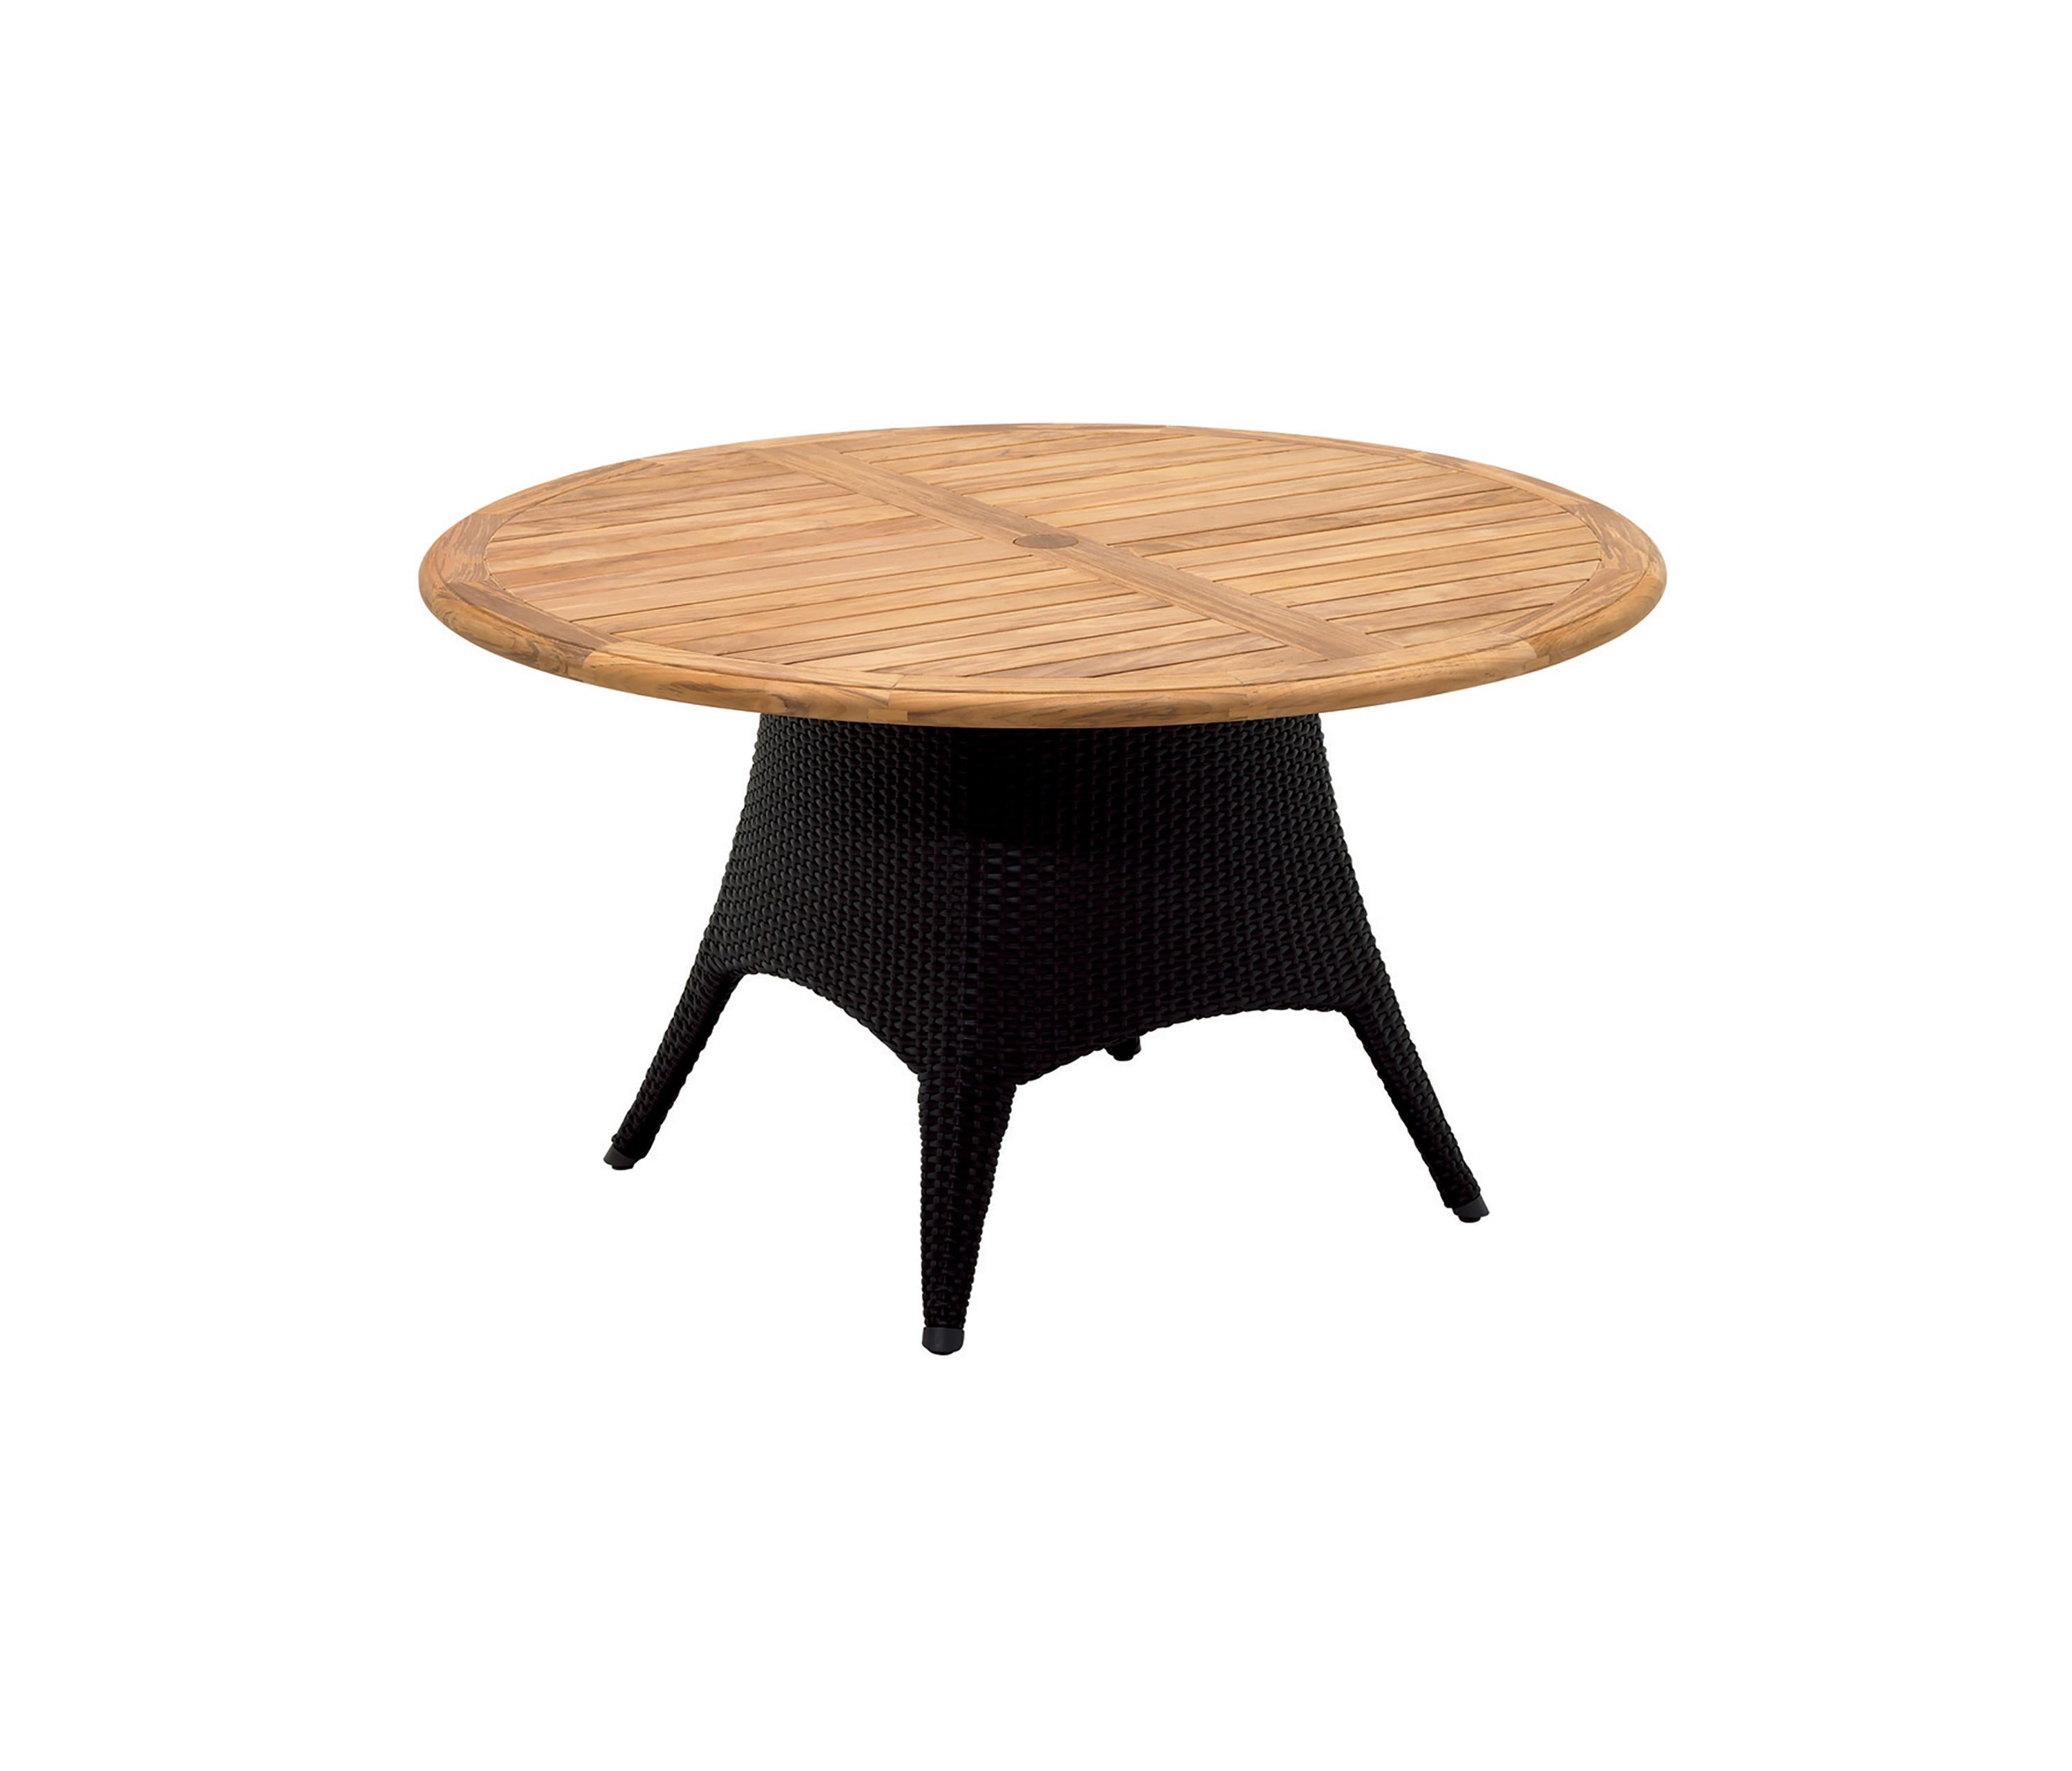 Plantation Round 5 Seater Table Dining Tables From